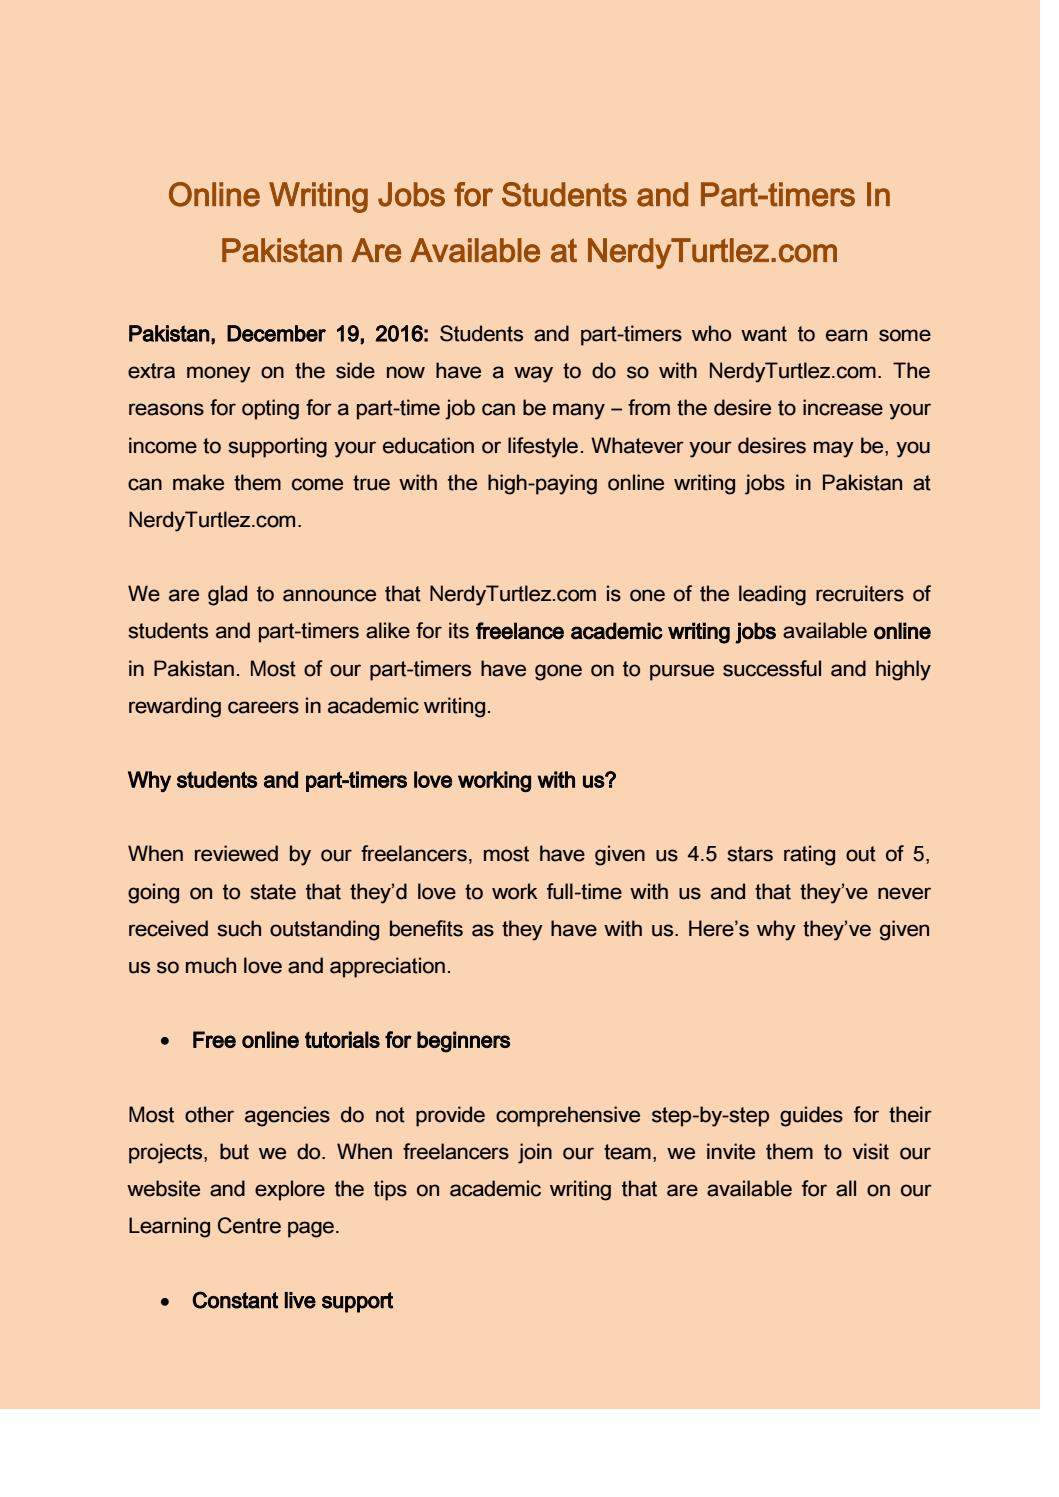 Online writing jobs for students and part timers in pakistan